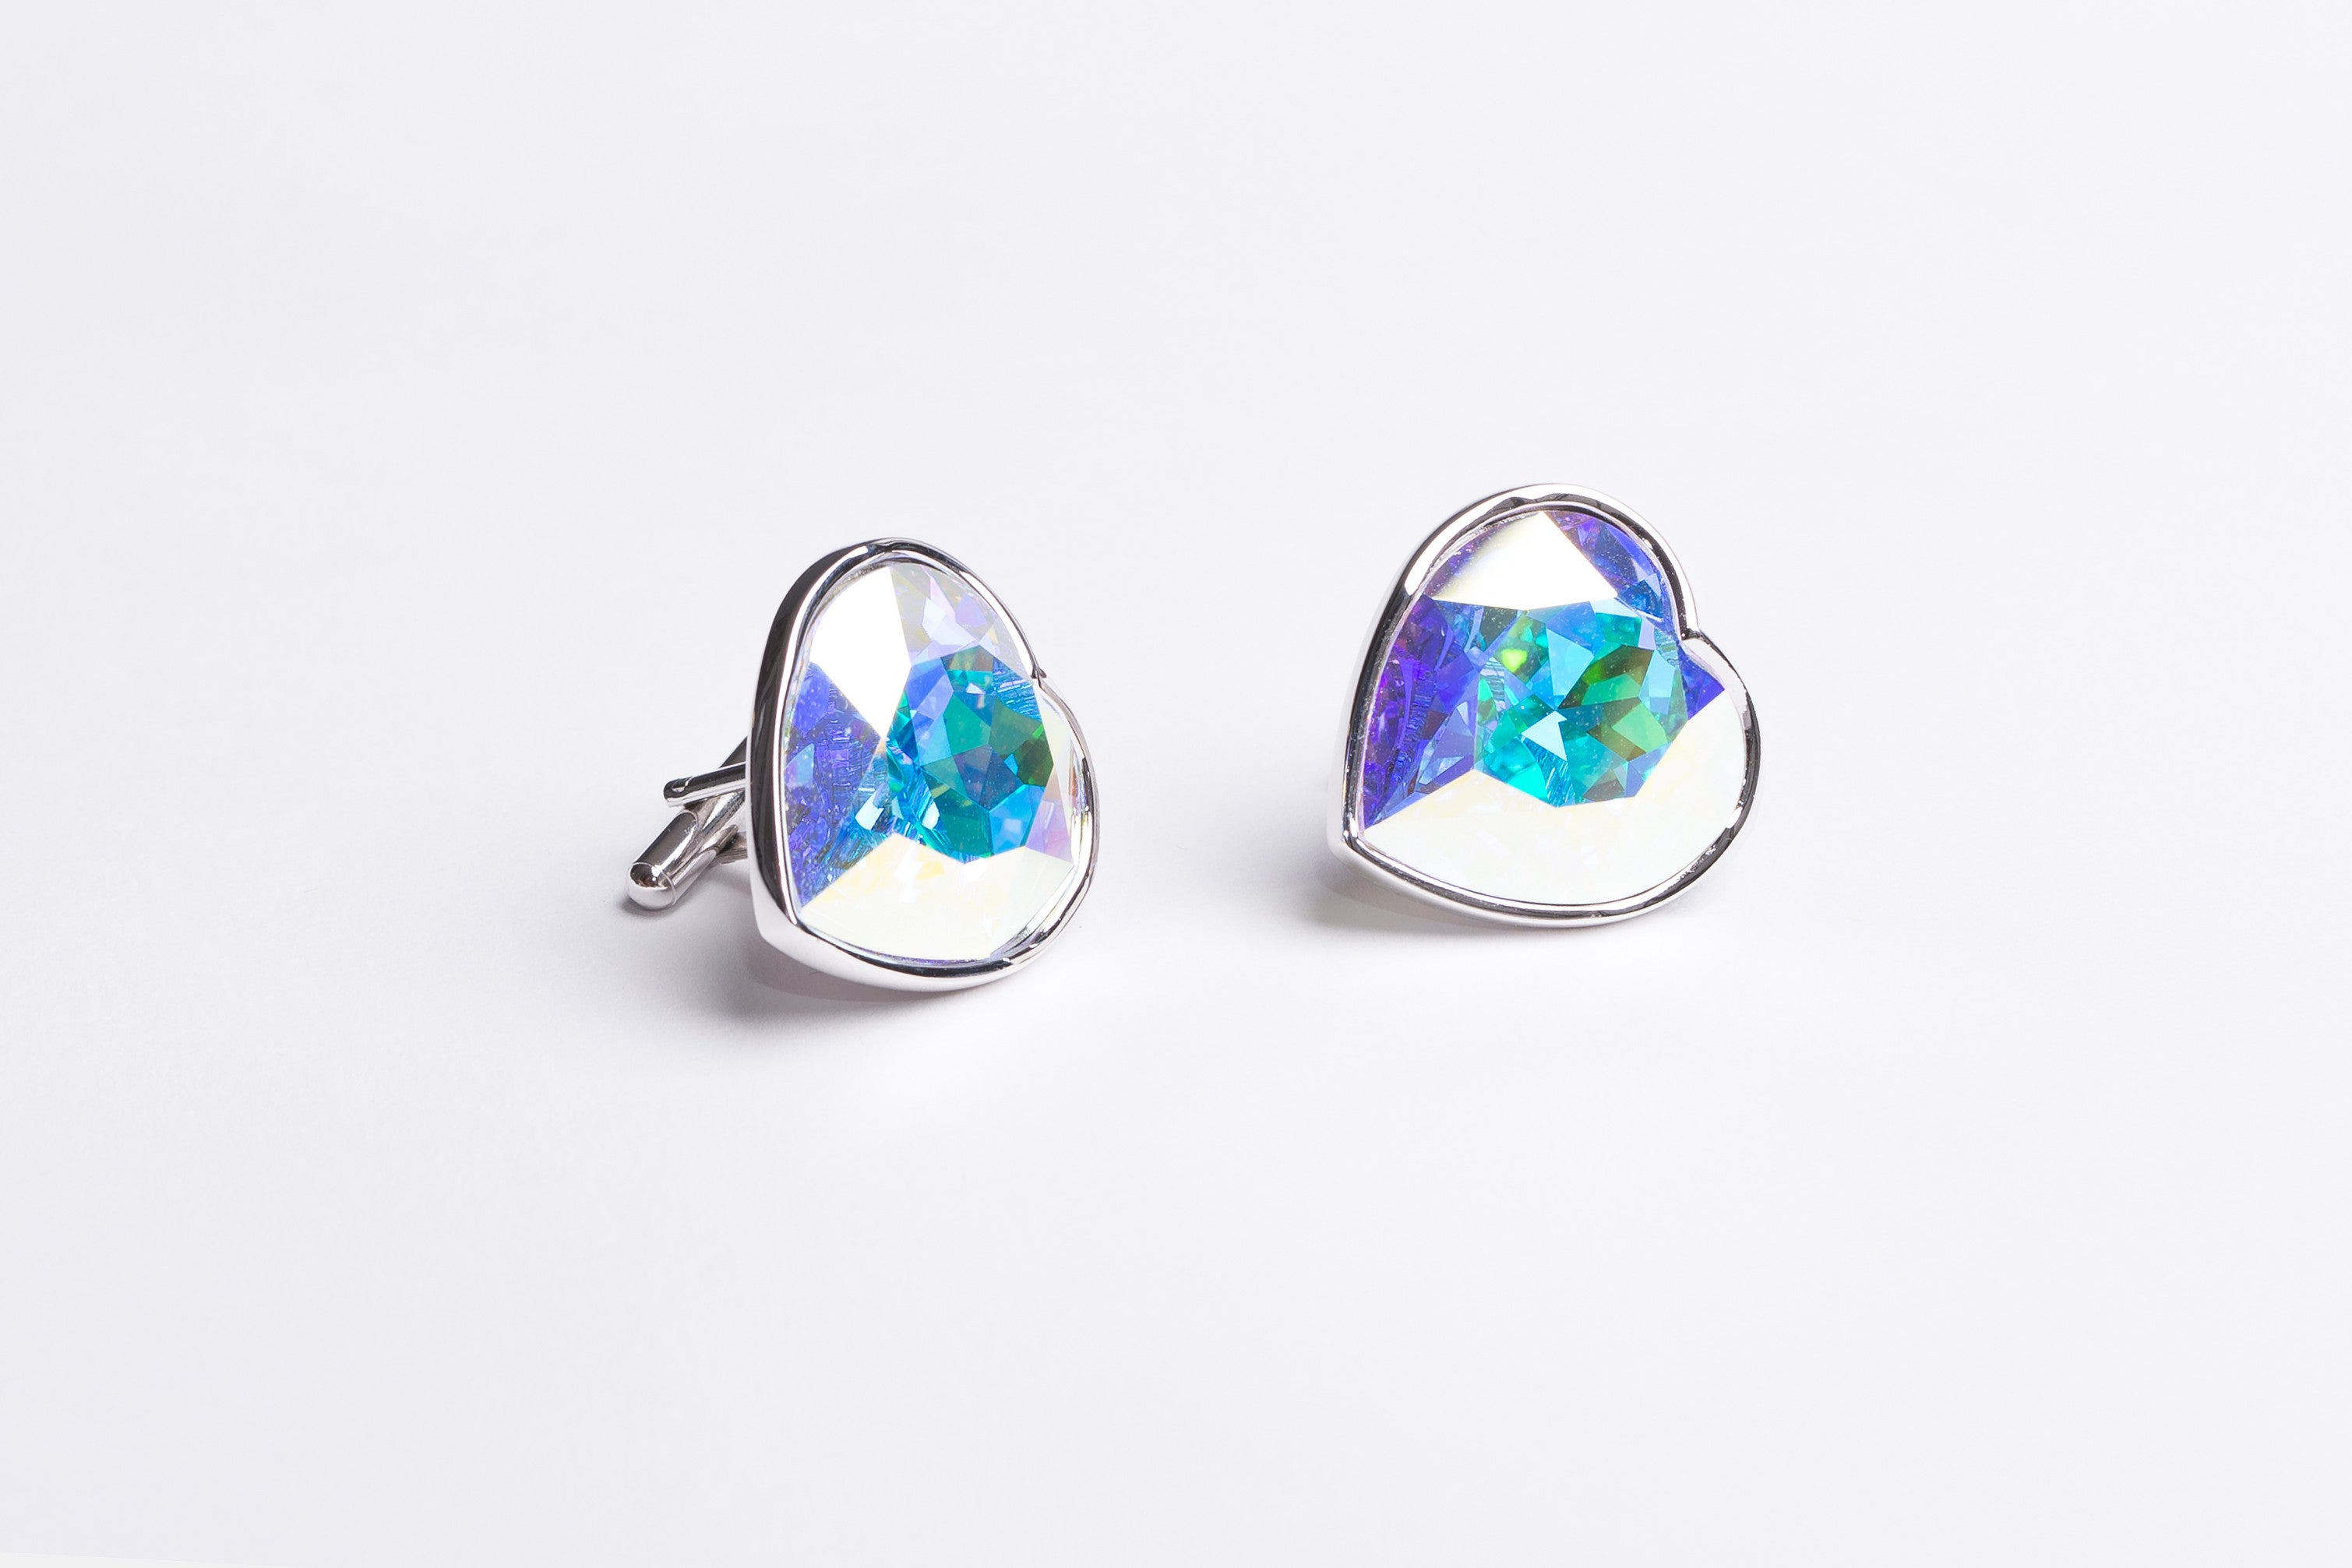 Tanzanite Blue Heart Shaped Cufflinks